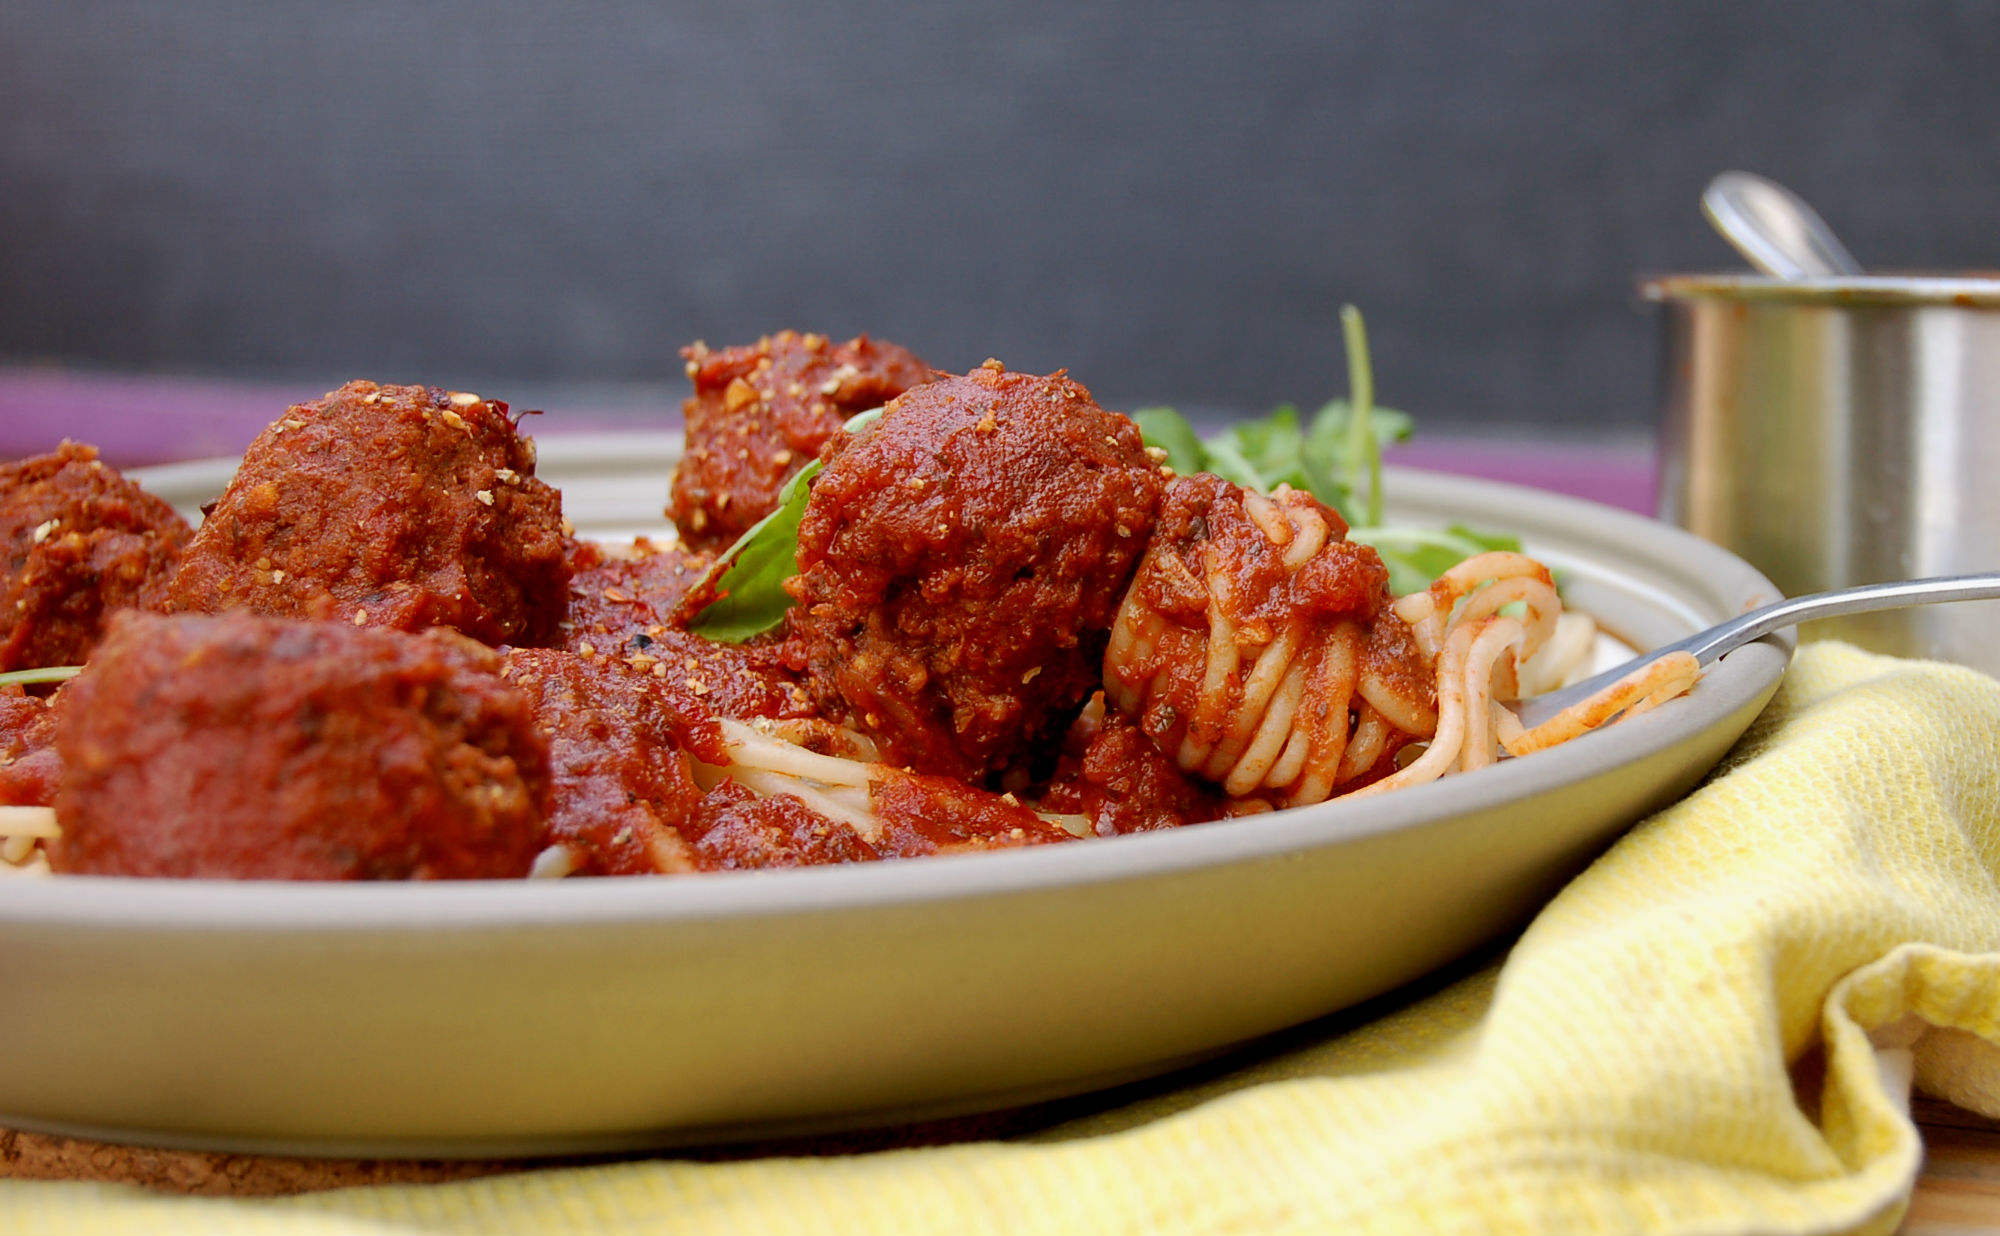 meatballs_side_view